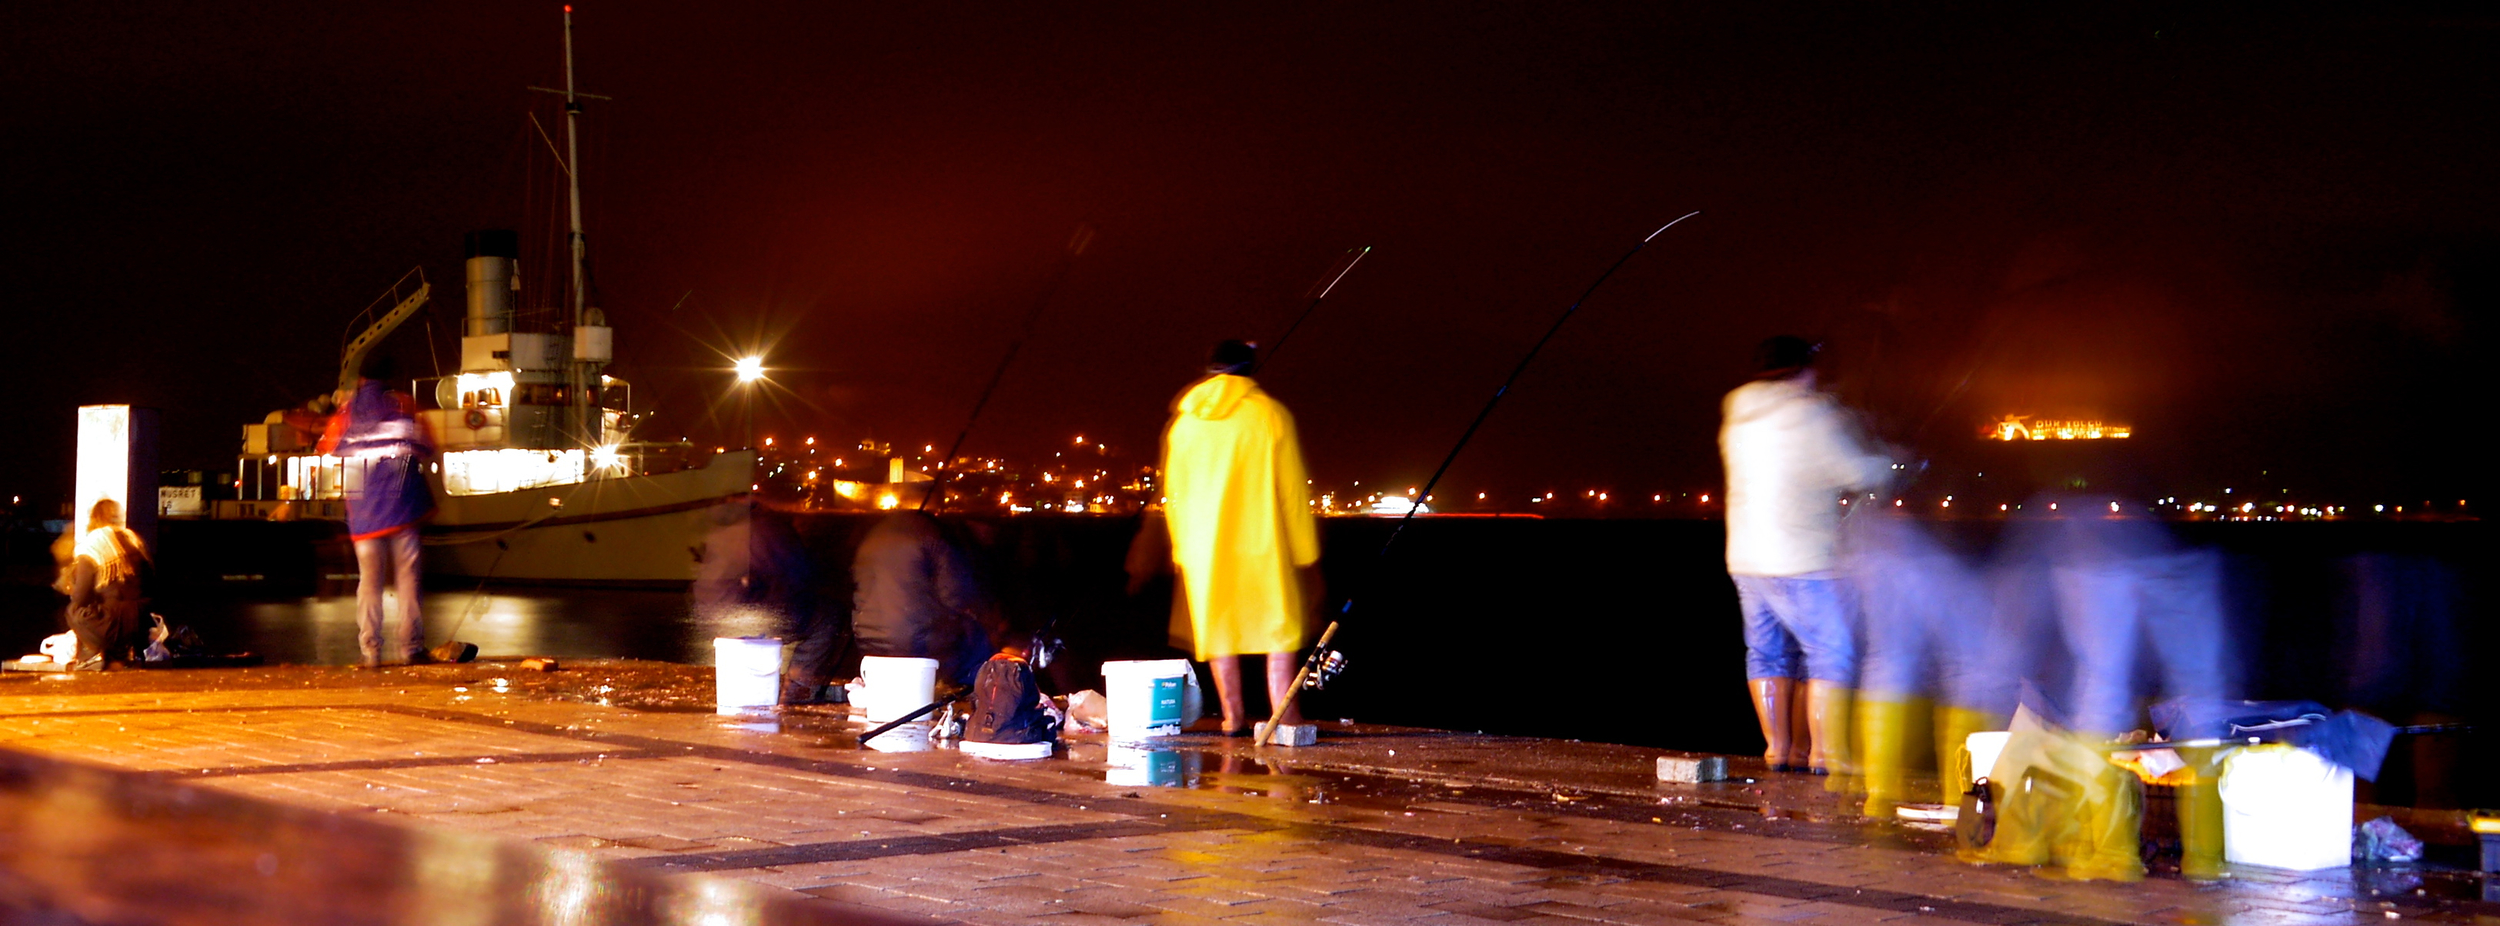 Figure 7. Night fishing